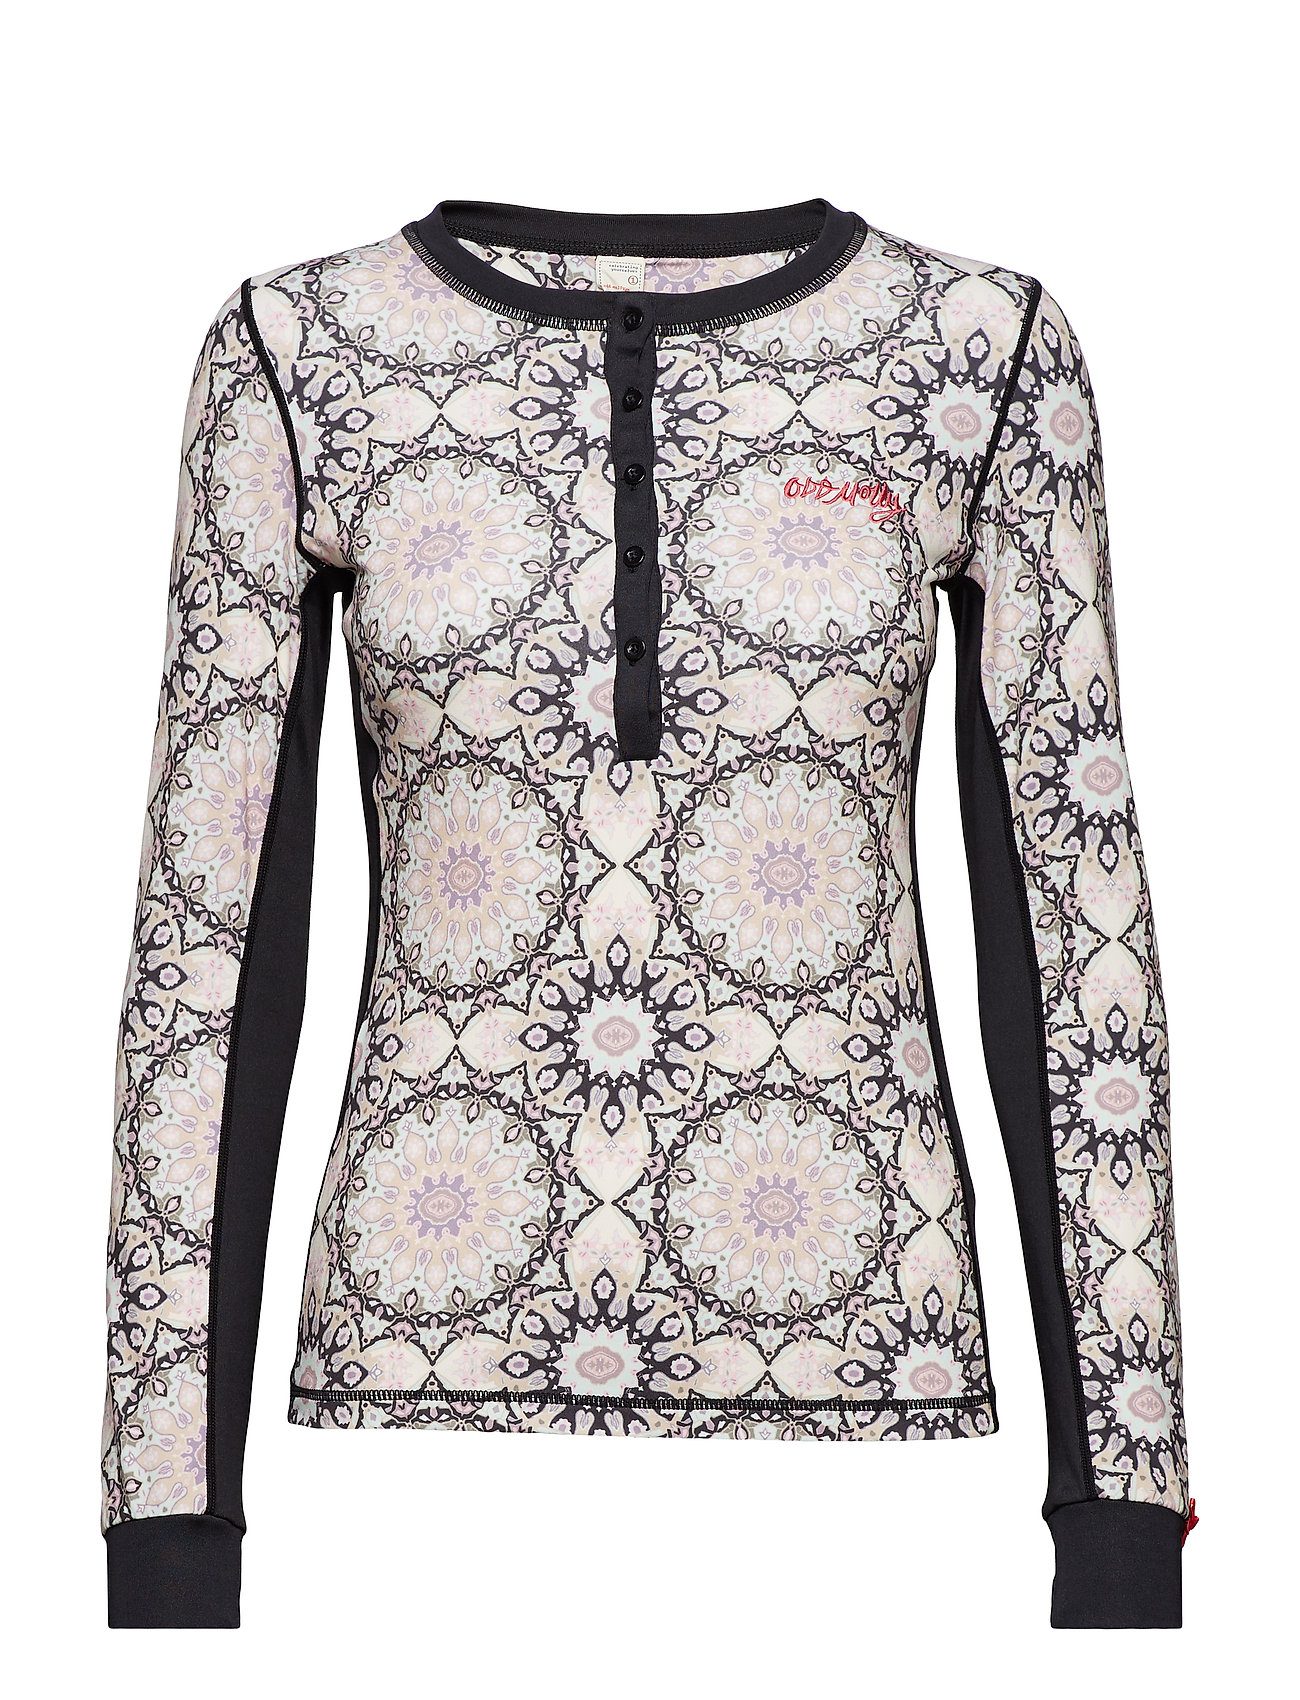 ODD MOLLY ACTIVE WEAR love base layer l/s top